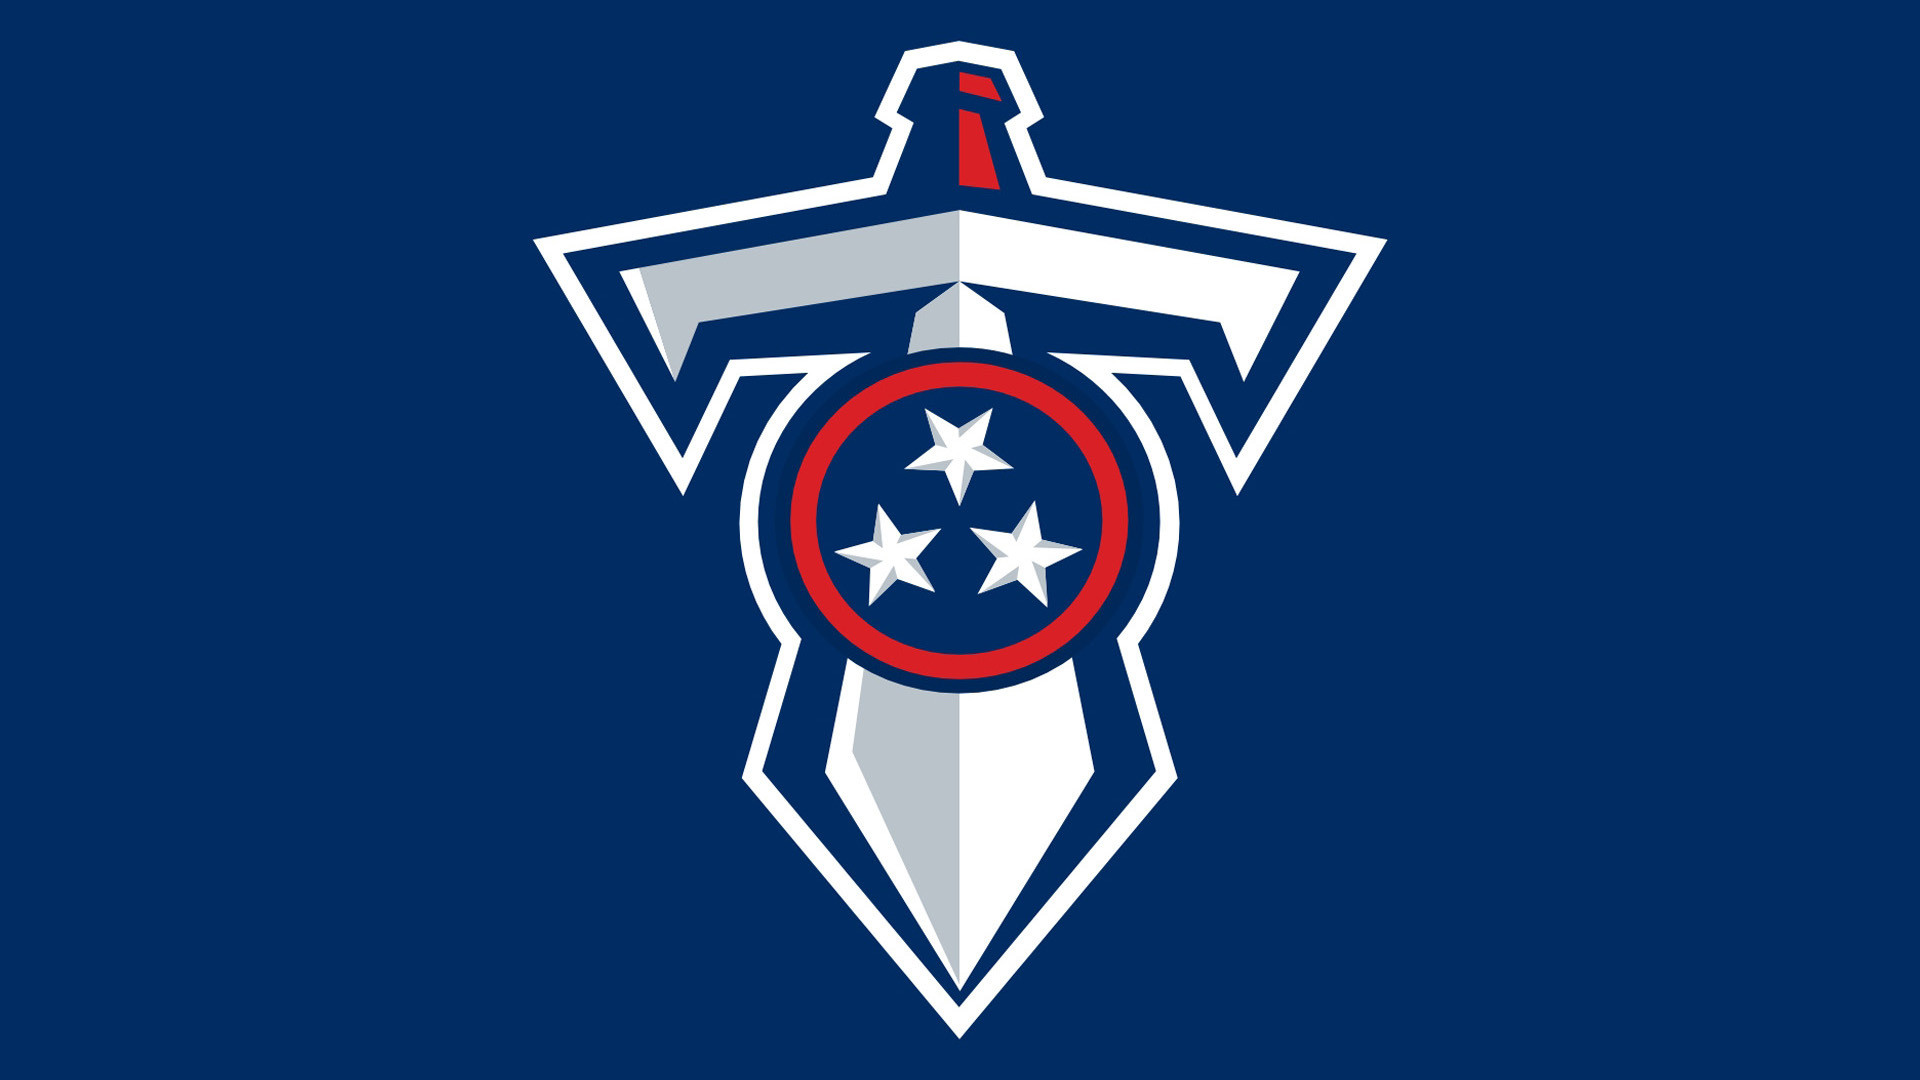 Res: 1920x1080, Tennessee Titans Wallpaper